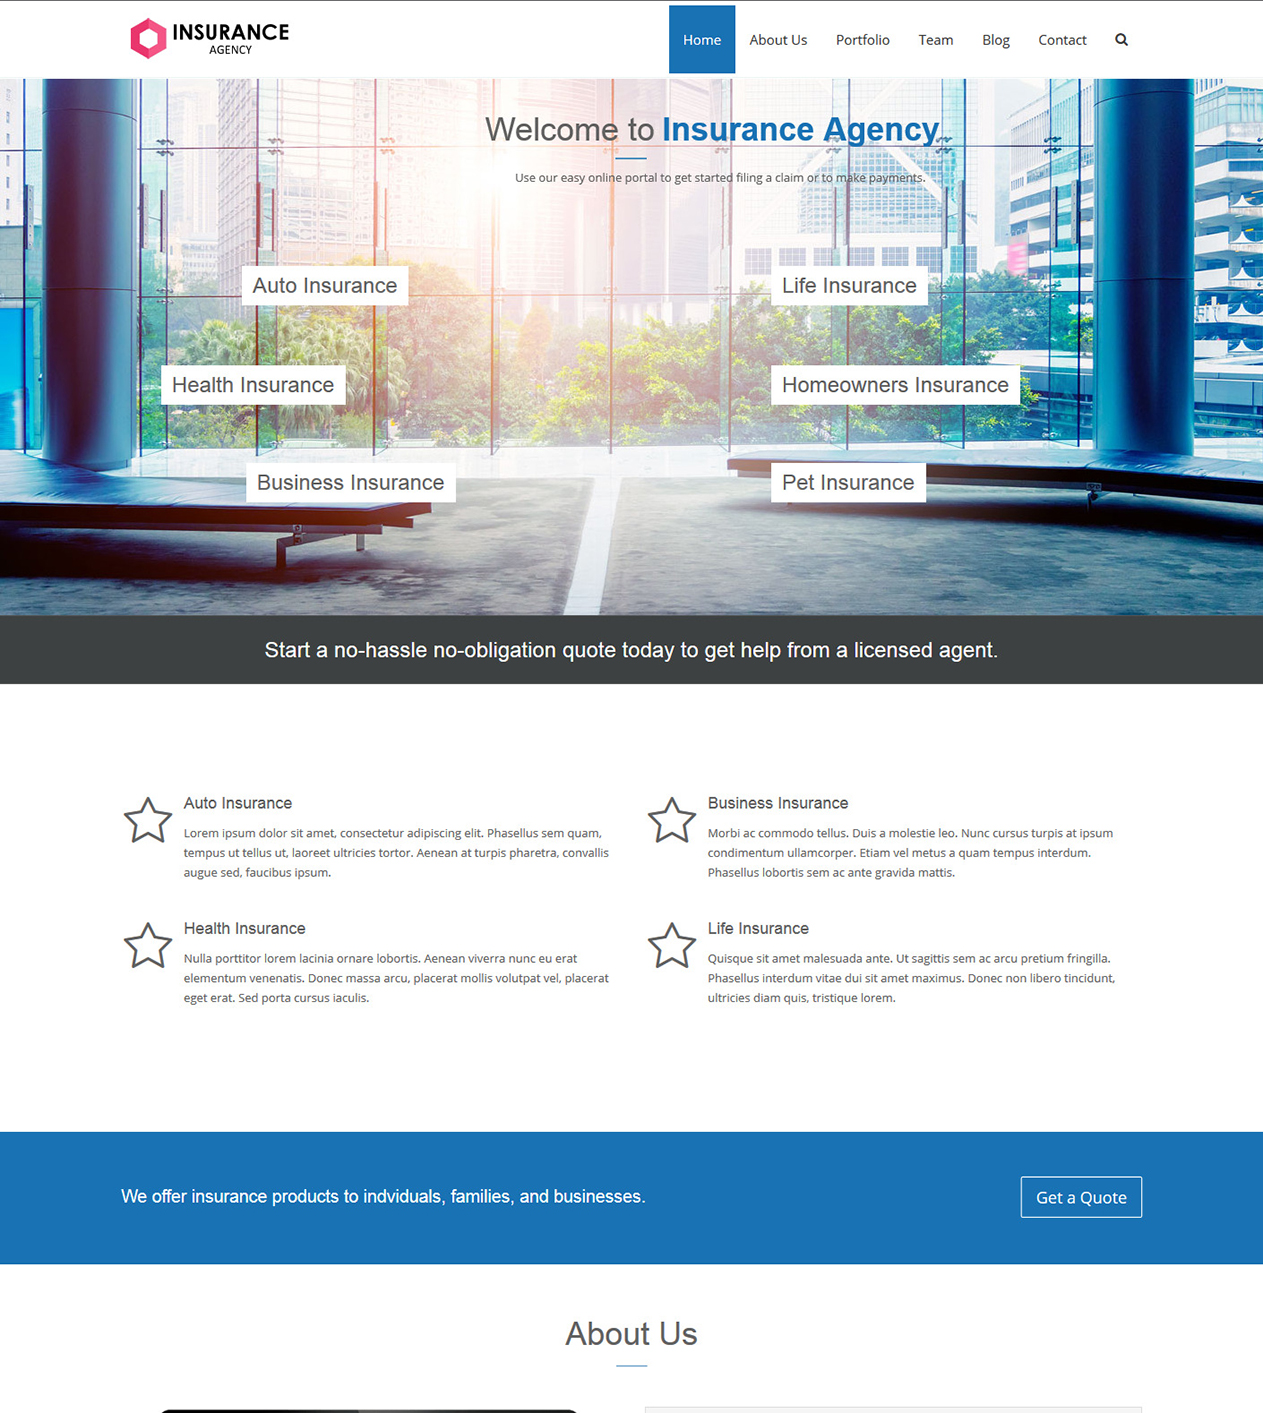 Insurance Agency - Our Themes